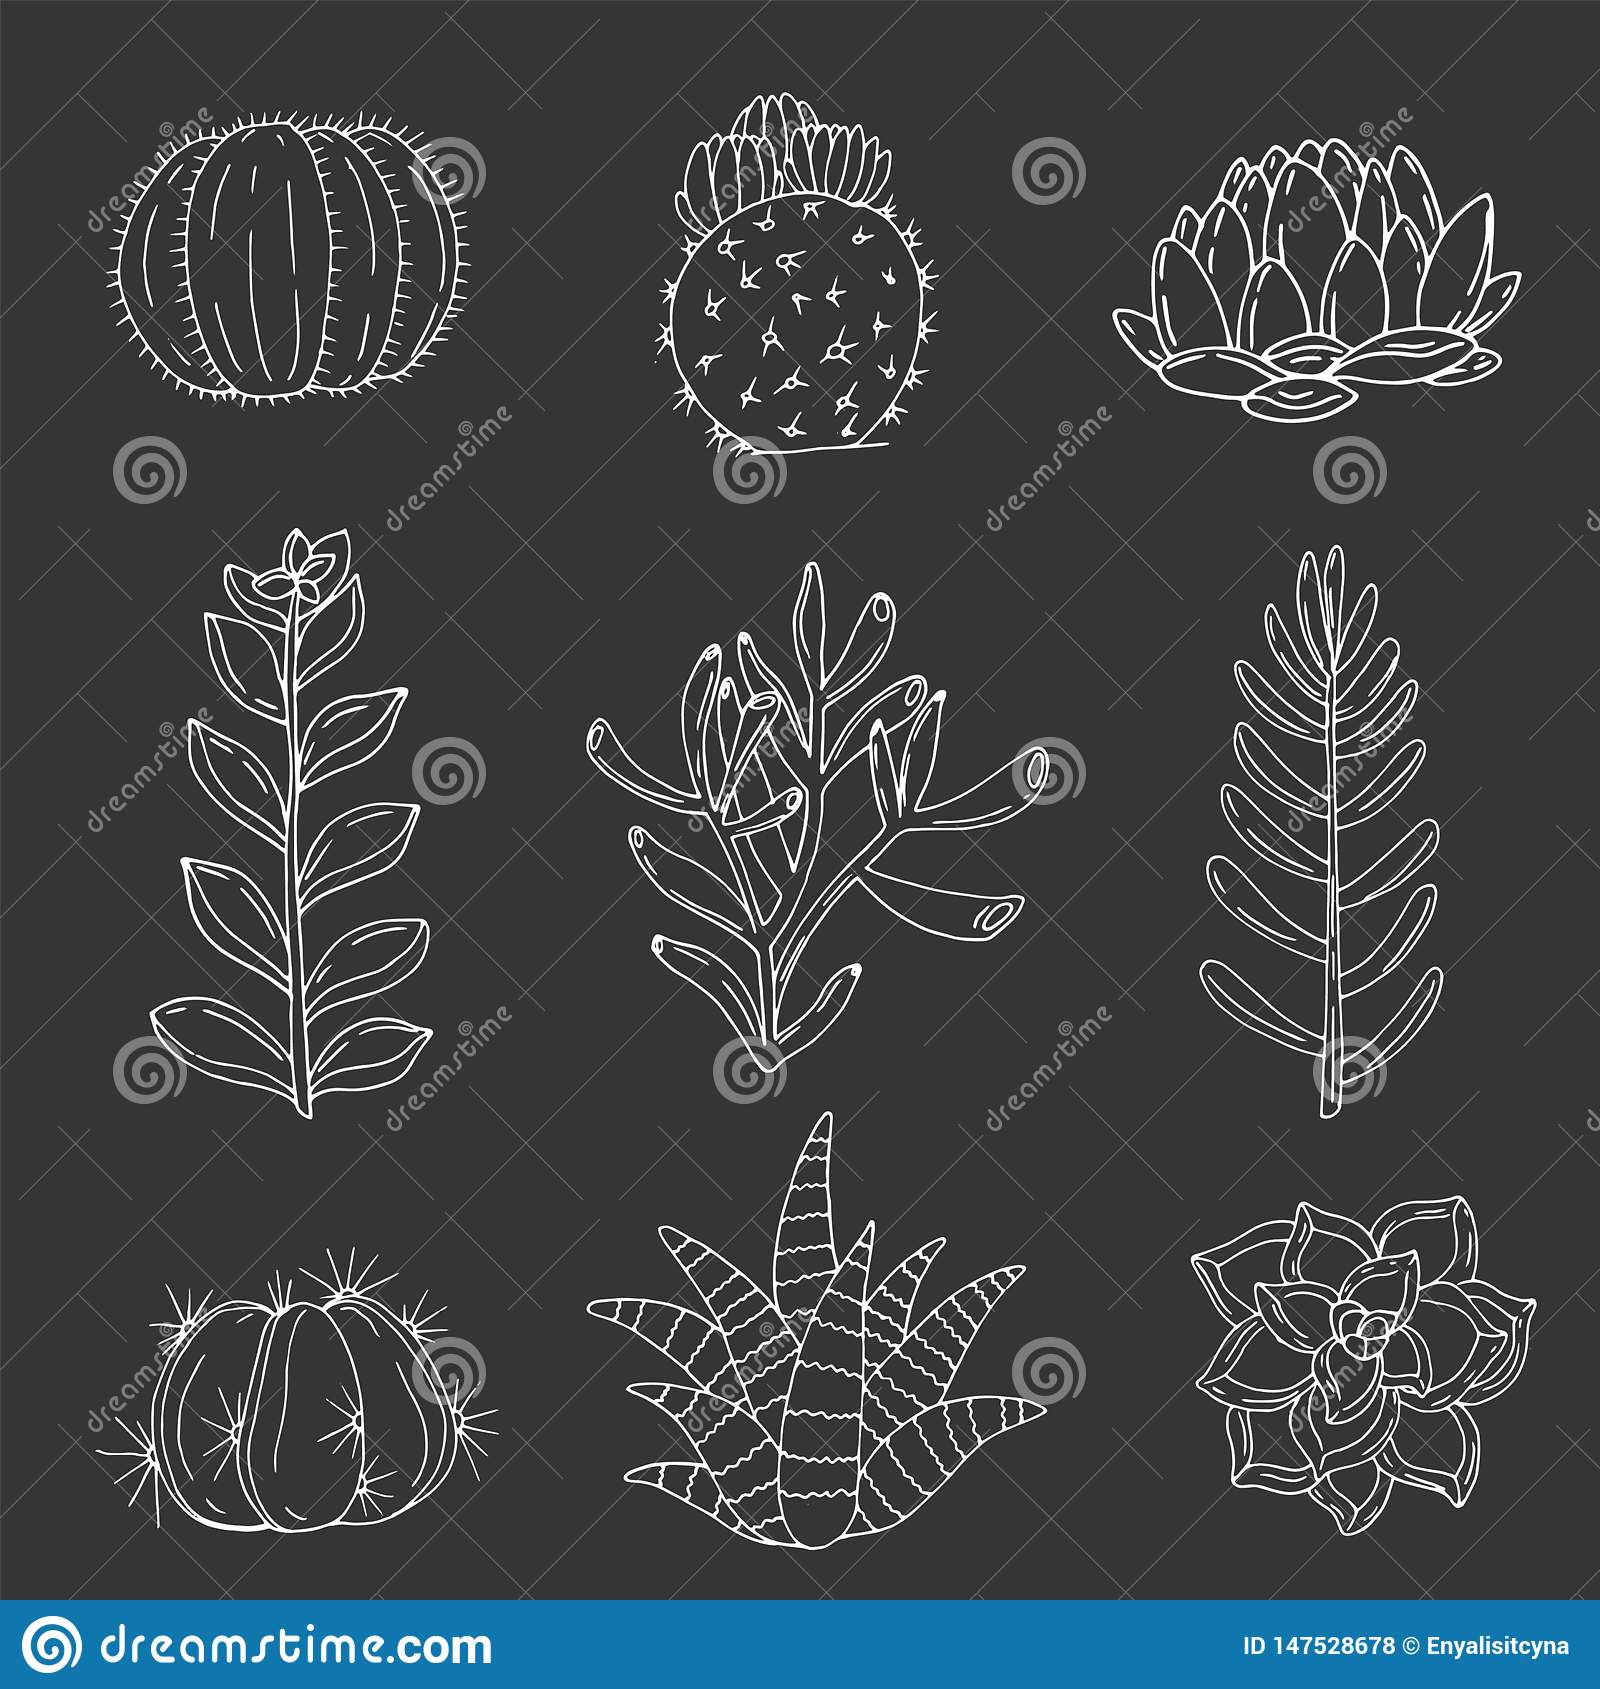 Set Of Elements With Hand Drawn Cacti And Succulents On A Chalkboard Background Stock Vector Illustration Of Botanic Black 147528678